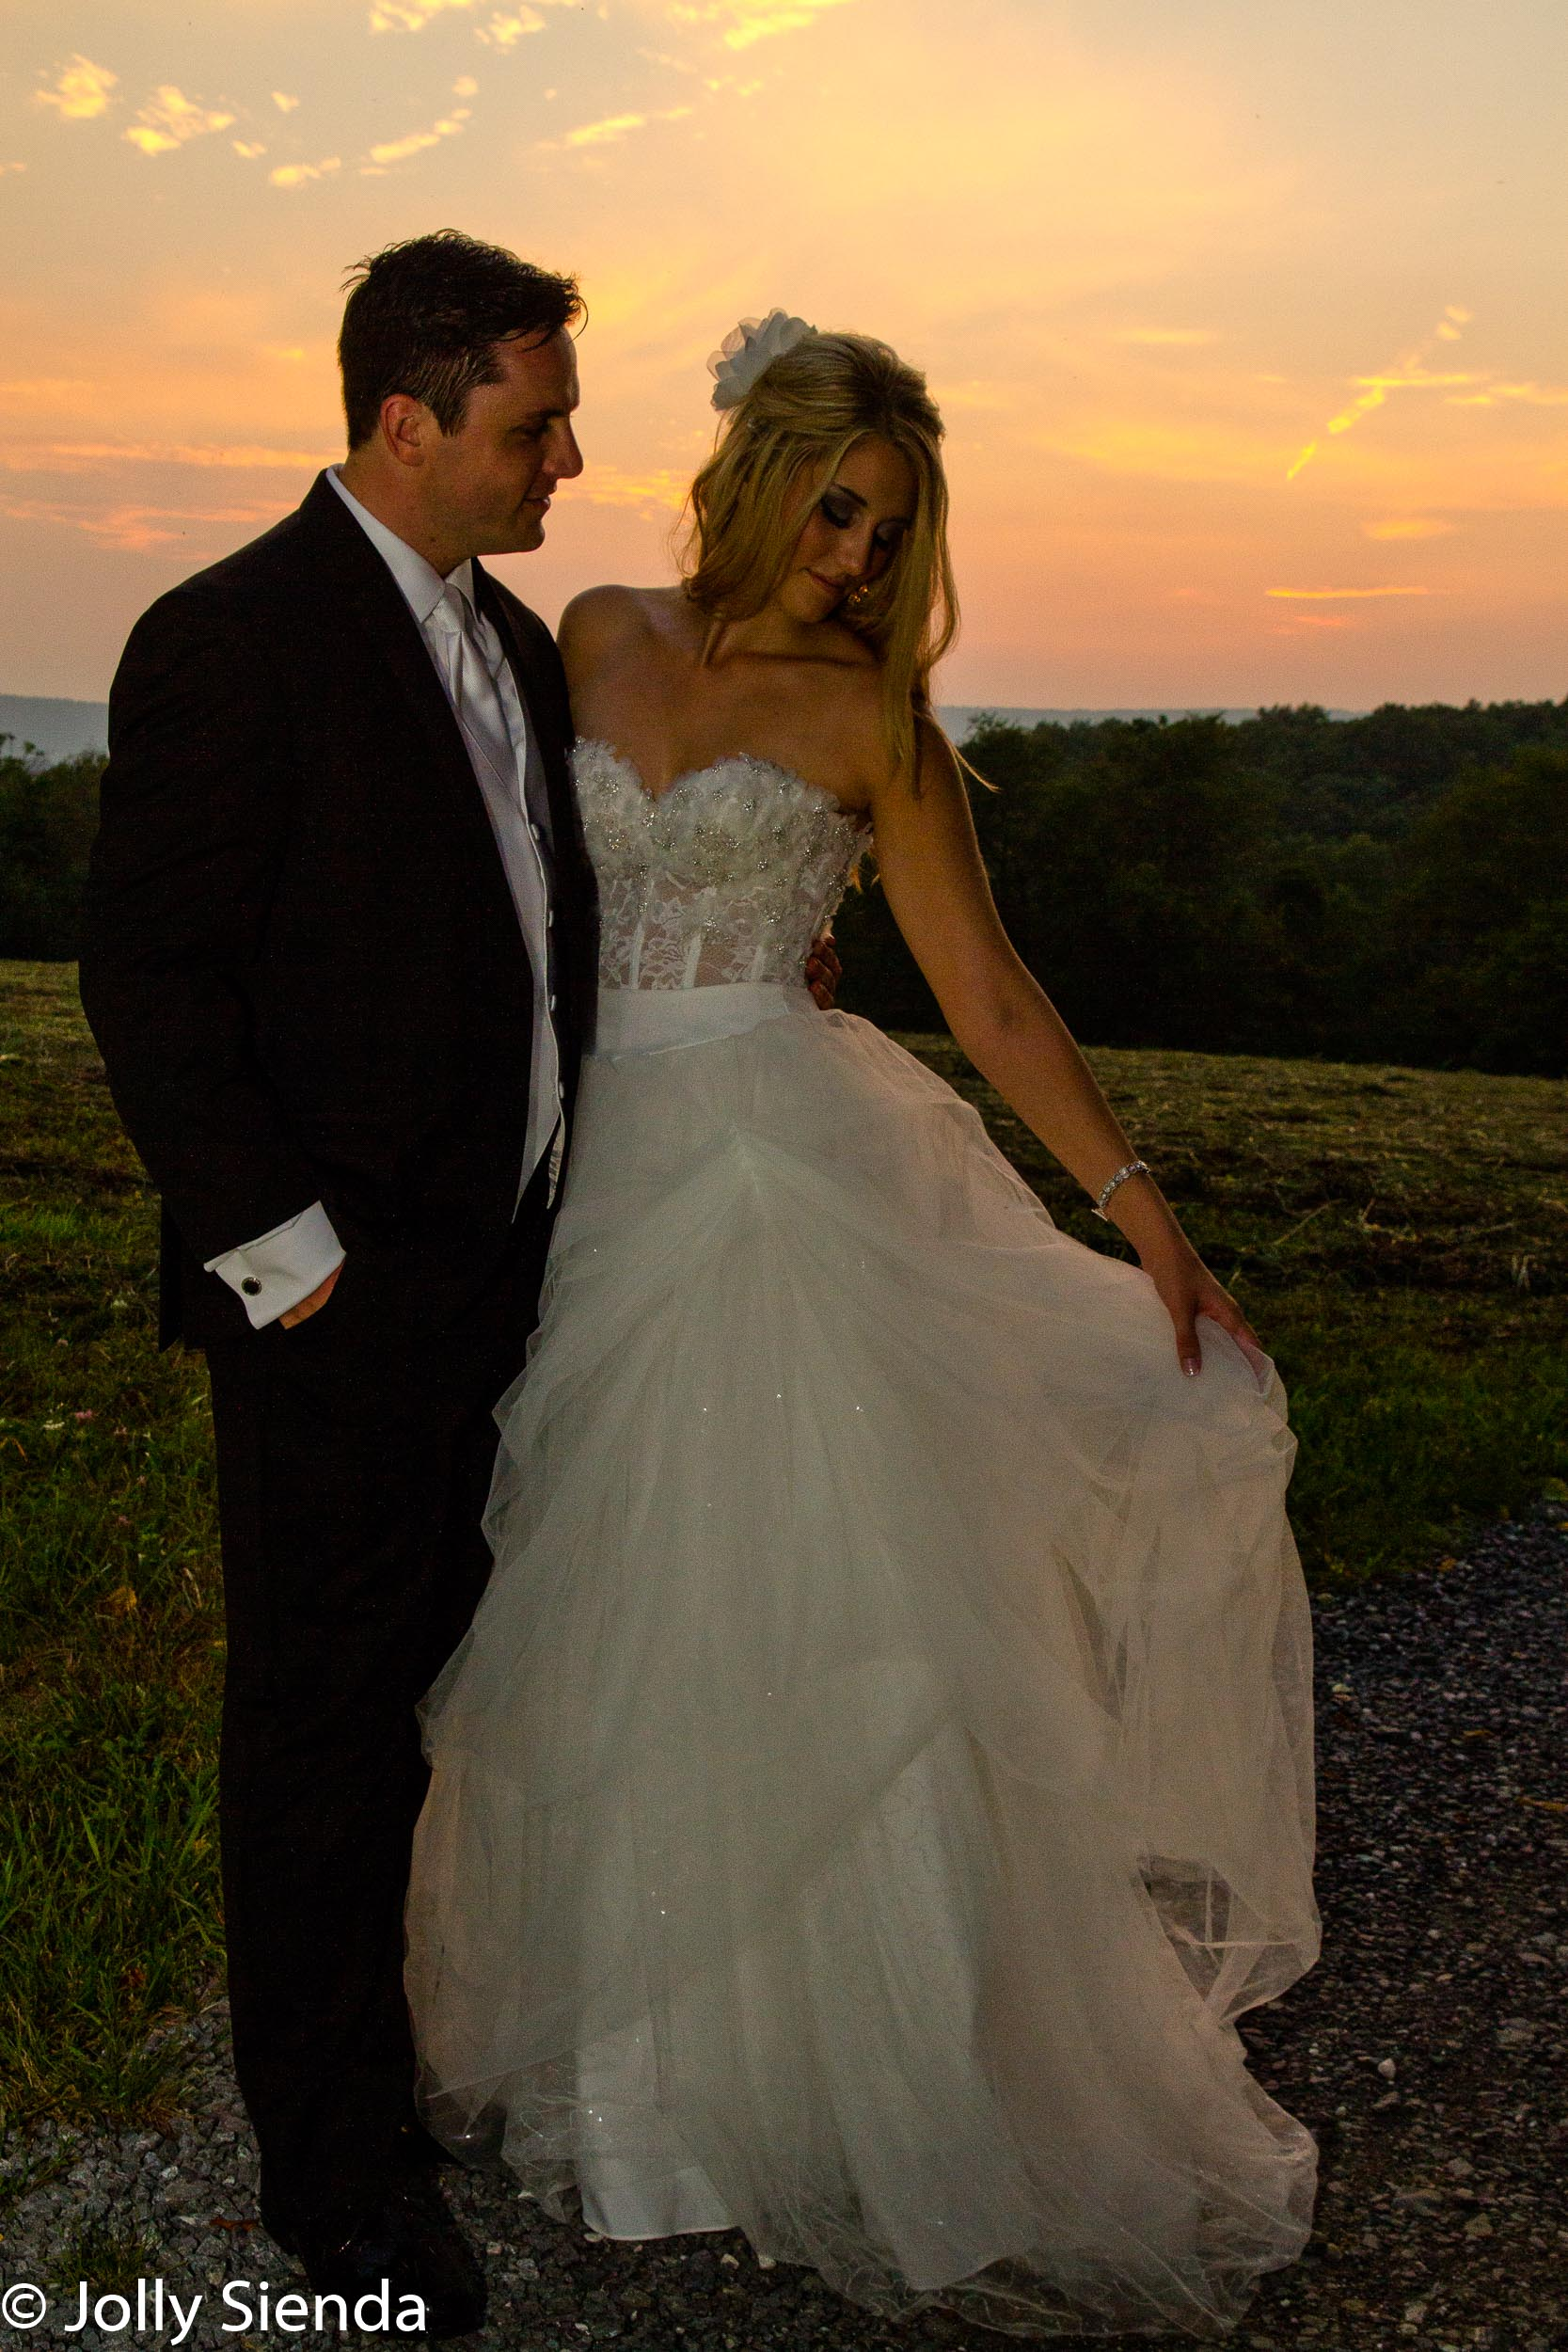 Bride and groom wedding portrait at sunset